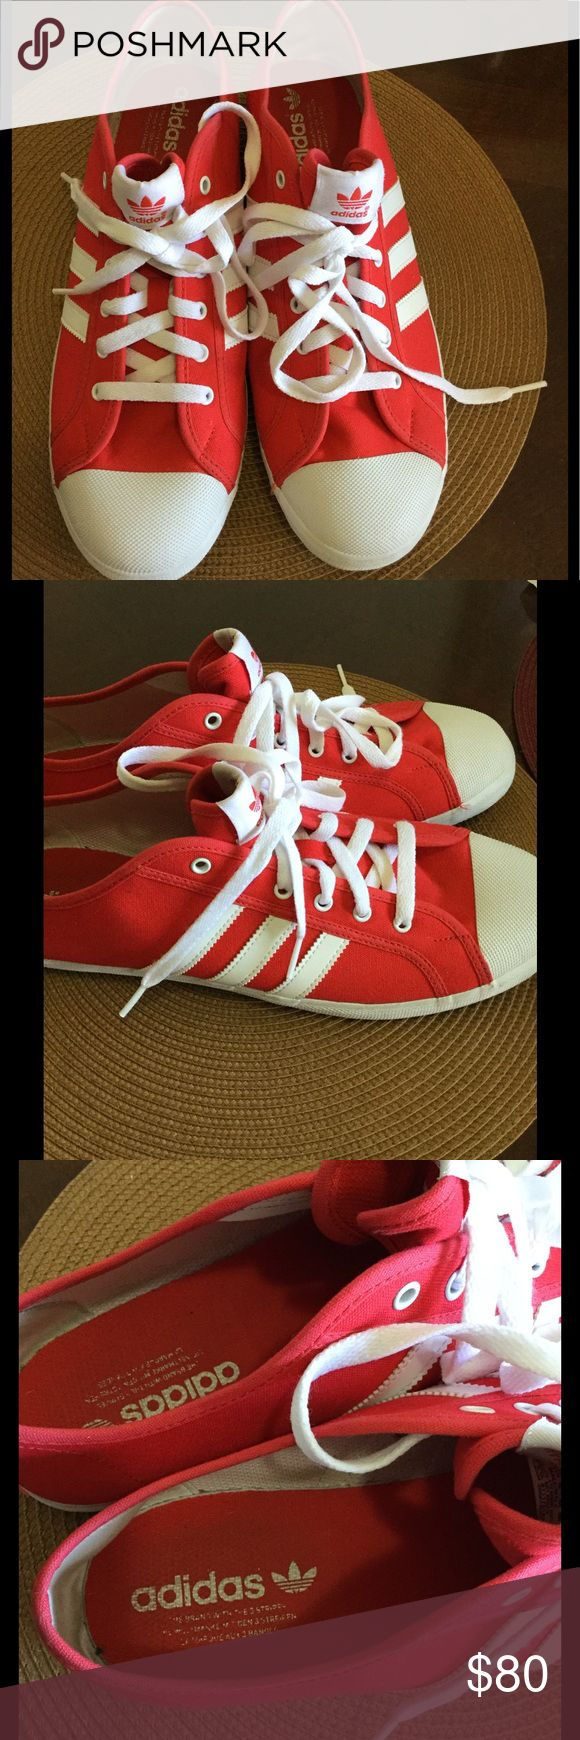 Adidas three stripes original in red and white Adidas three stripes original in red and white in great, near new condition. adidas Shoes Sneakers